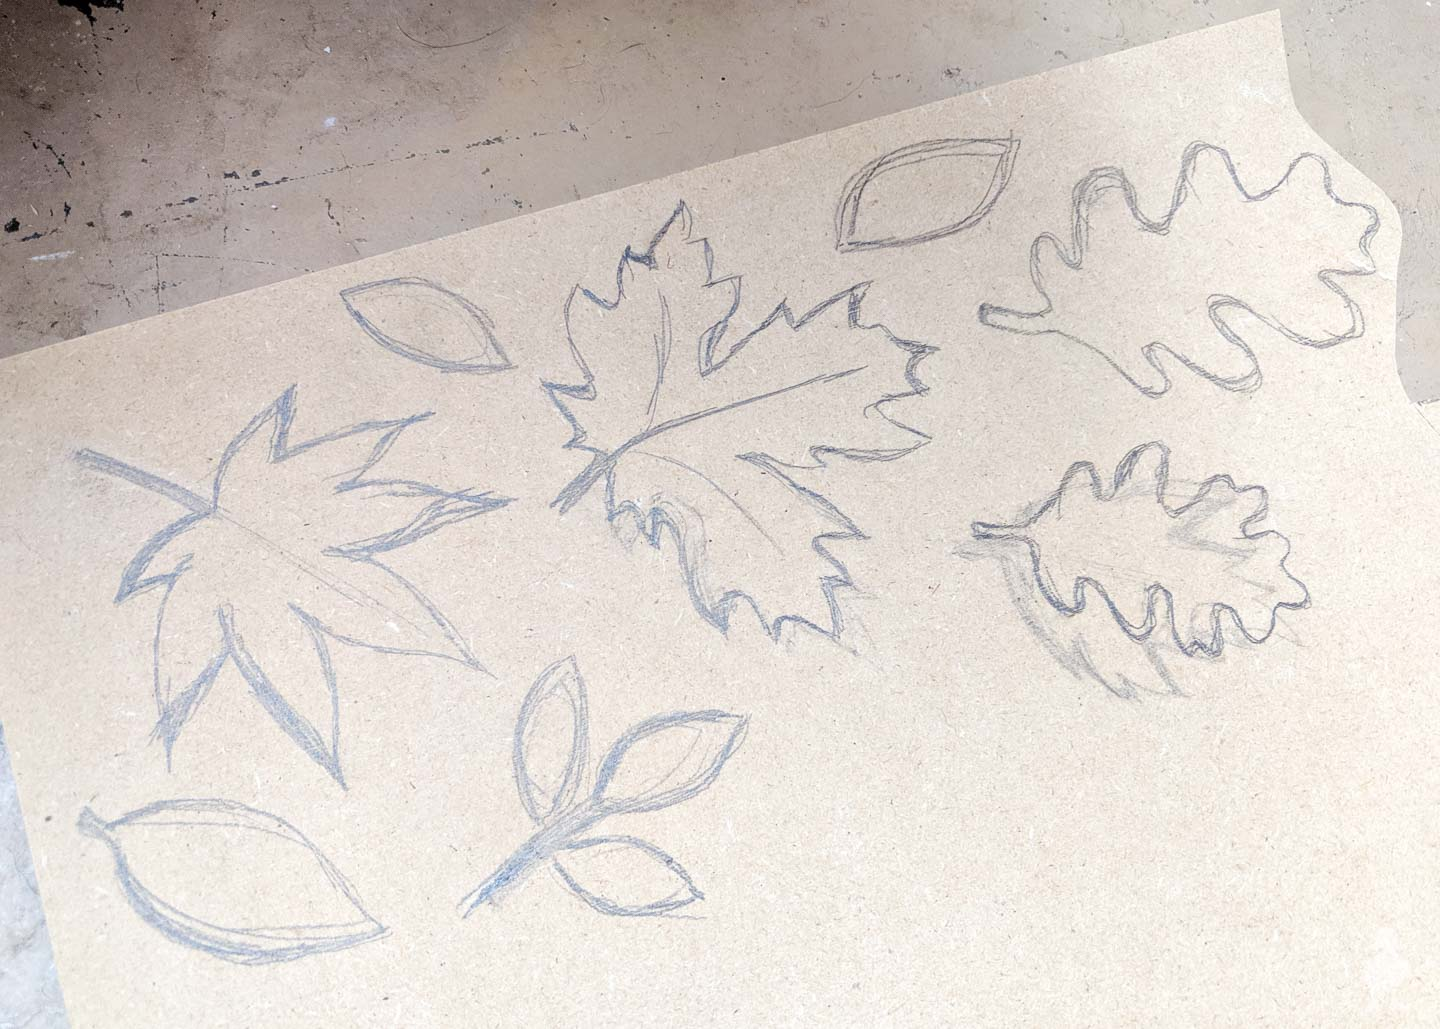 sketches of leaves on MDF